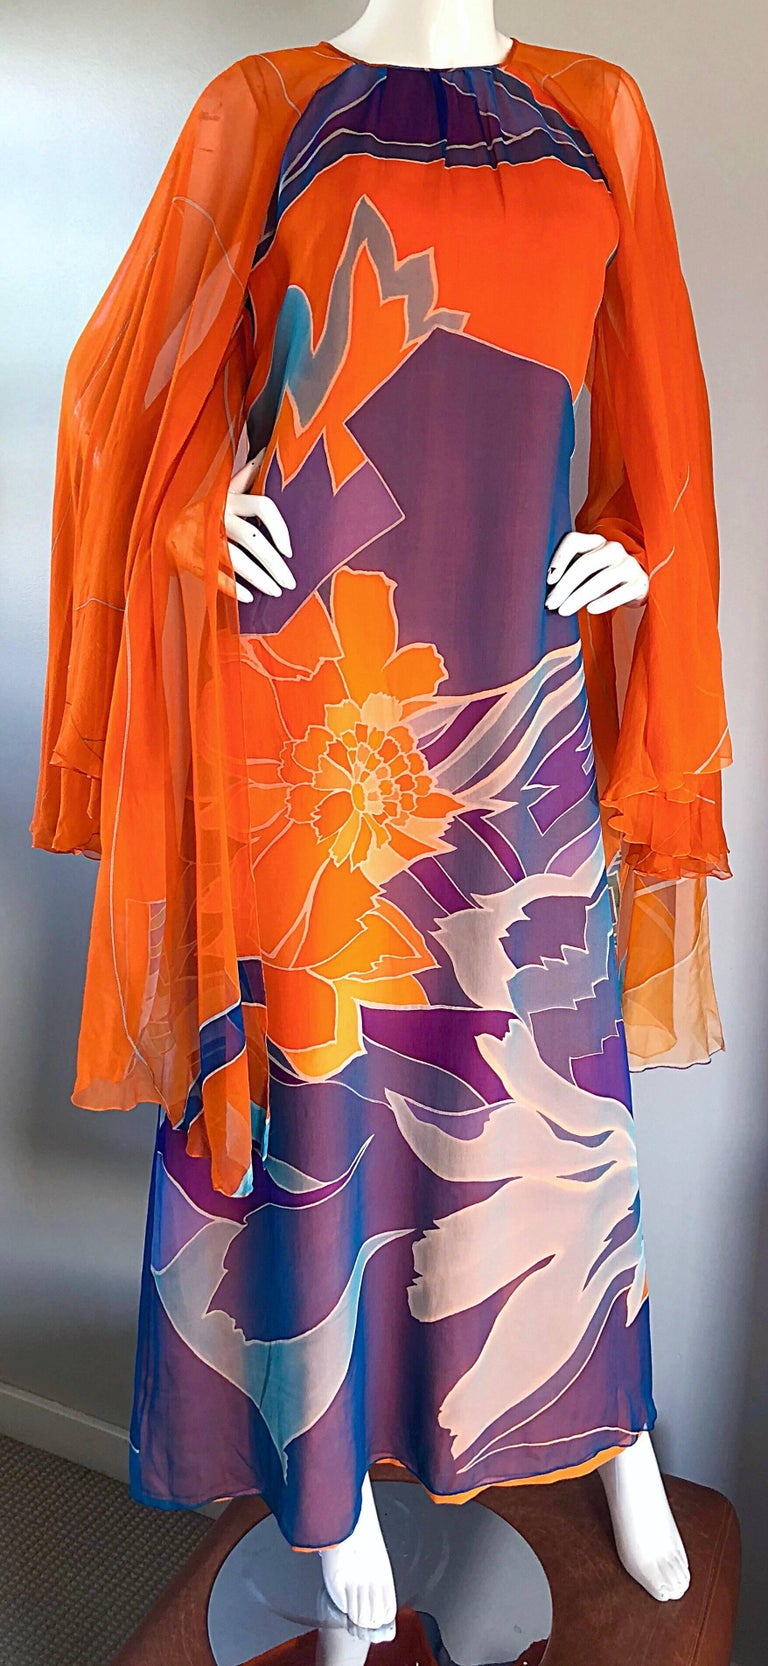 1970s Hanae Mori Couture Bright Orange Silk Chiffon Vintage Caftan Maxi Dress For Sale 5